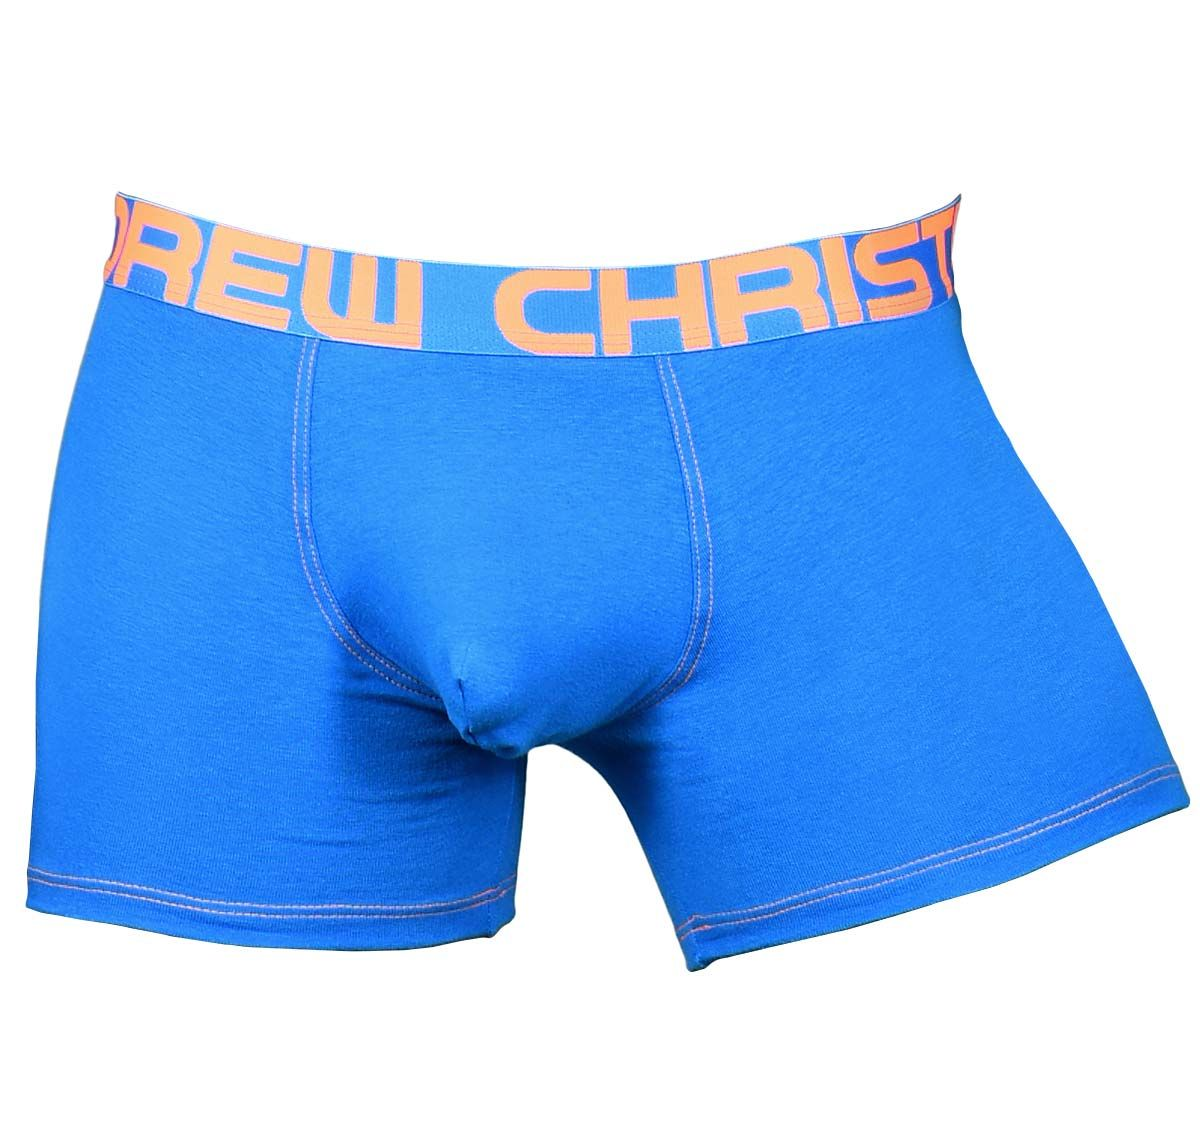 Andrew Christian Boxers ALMOST NAKED PREMIUM BOXER 91571, blue